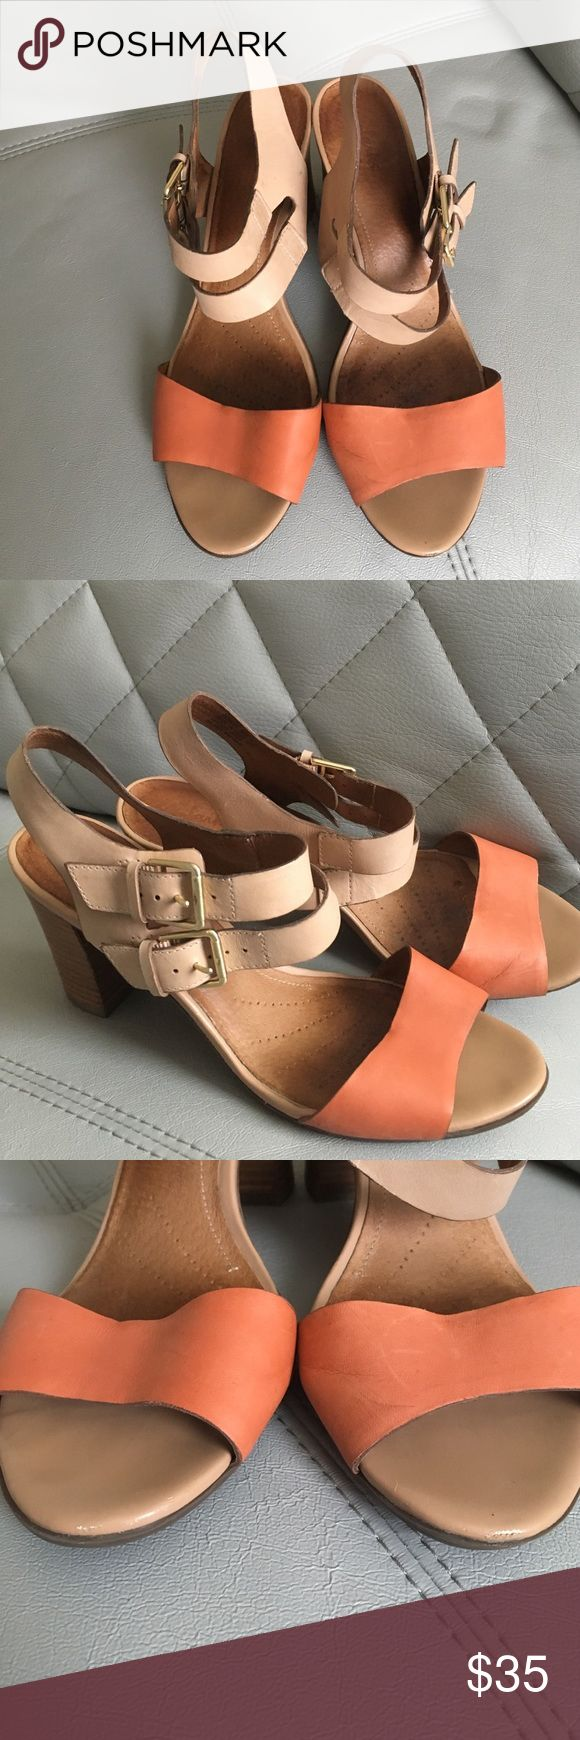 Clarks High Heel Open Toe  Sandals. Pre- owned. Good condition. Beige/ Salmon color. Clarks Shoes Sandals